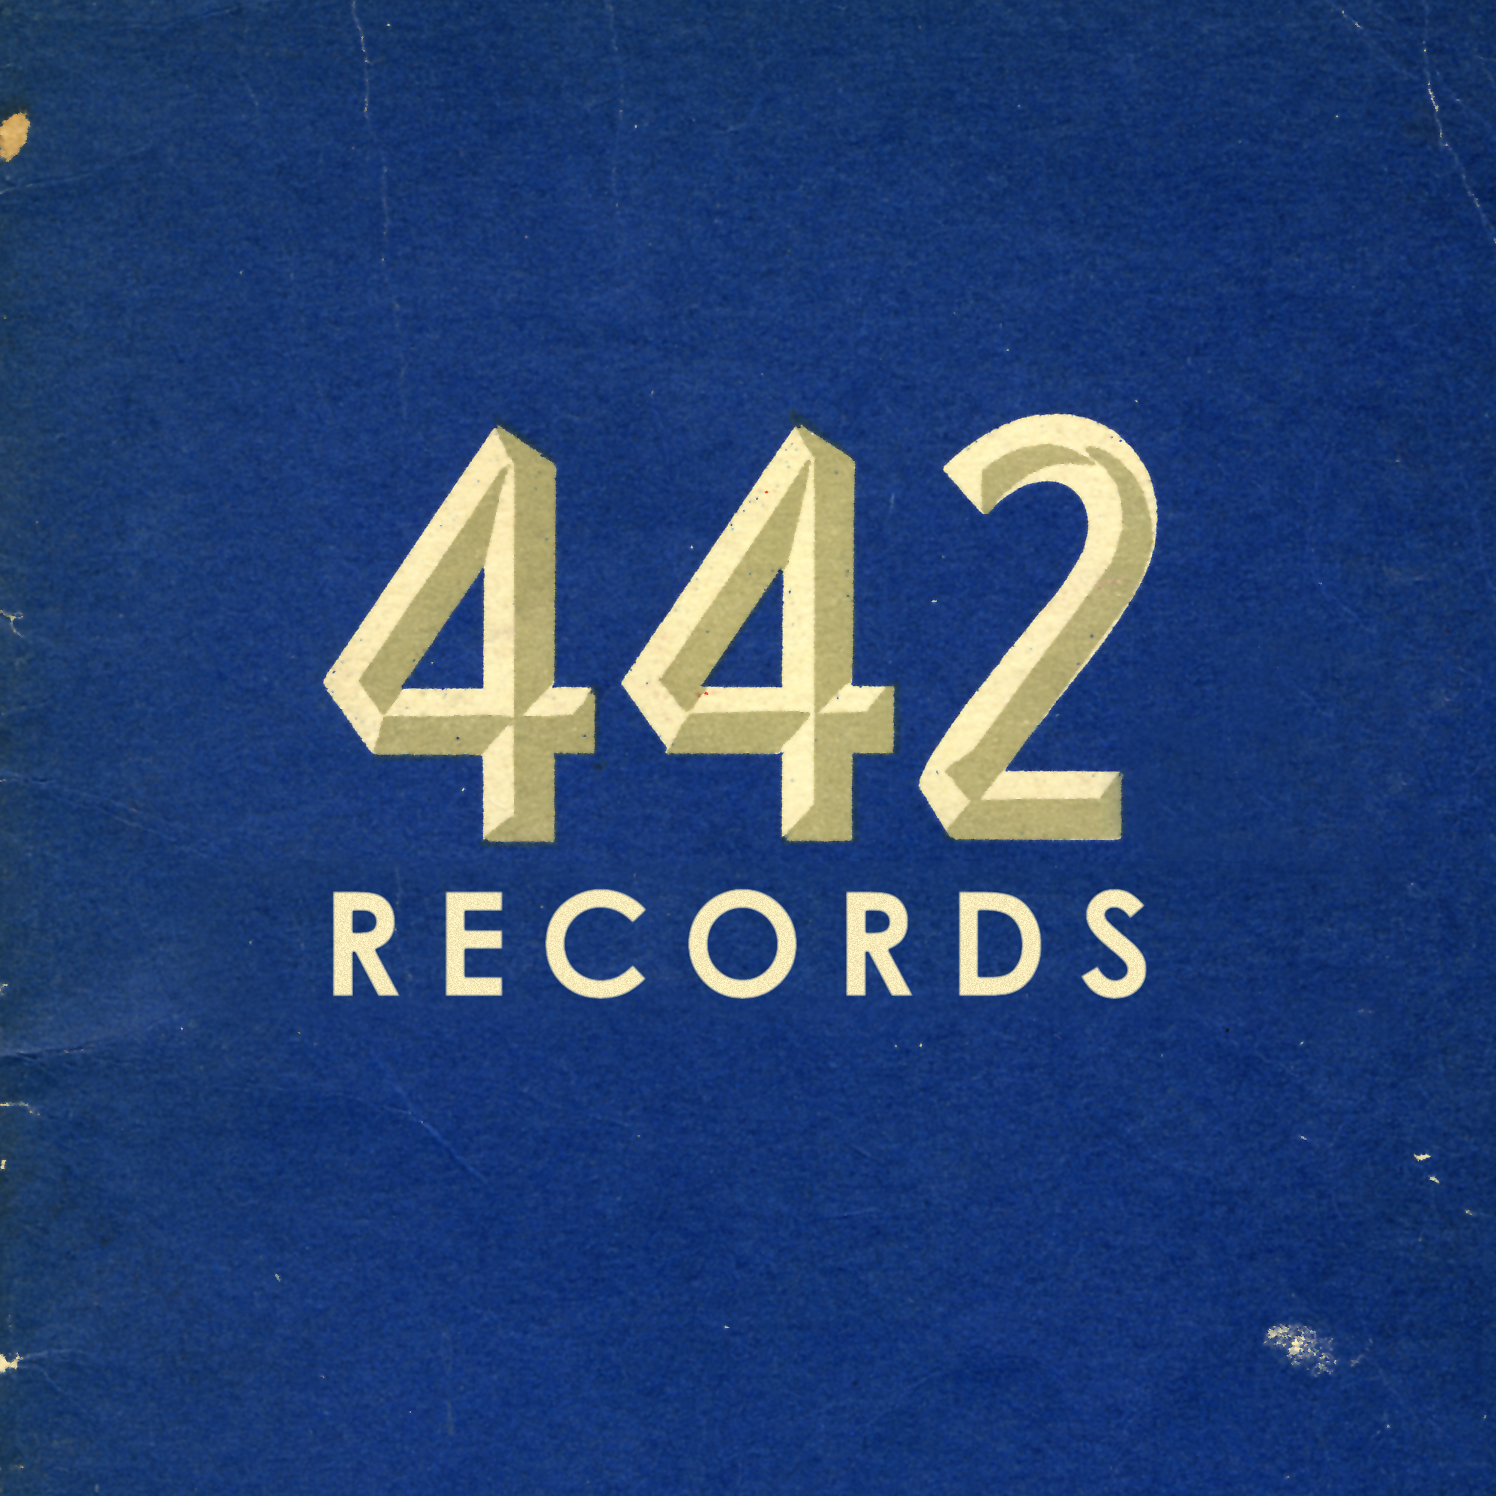 442 Records logo.jpg